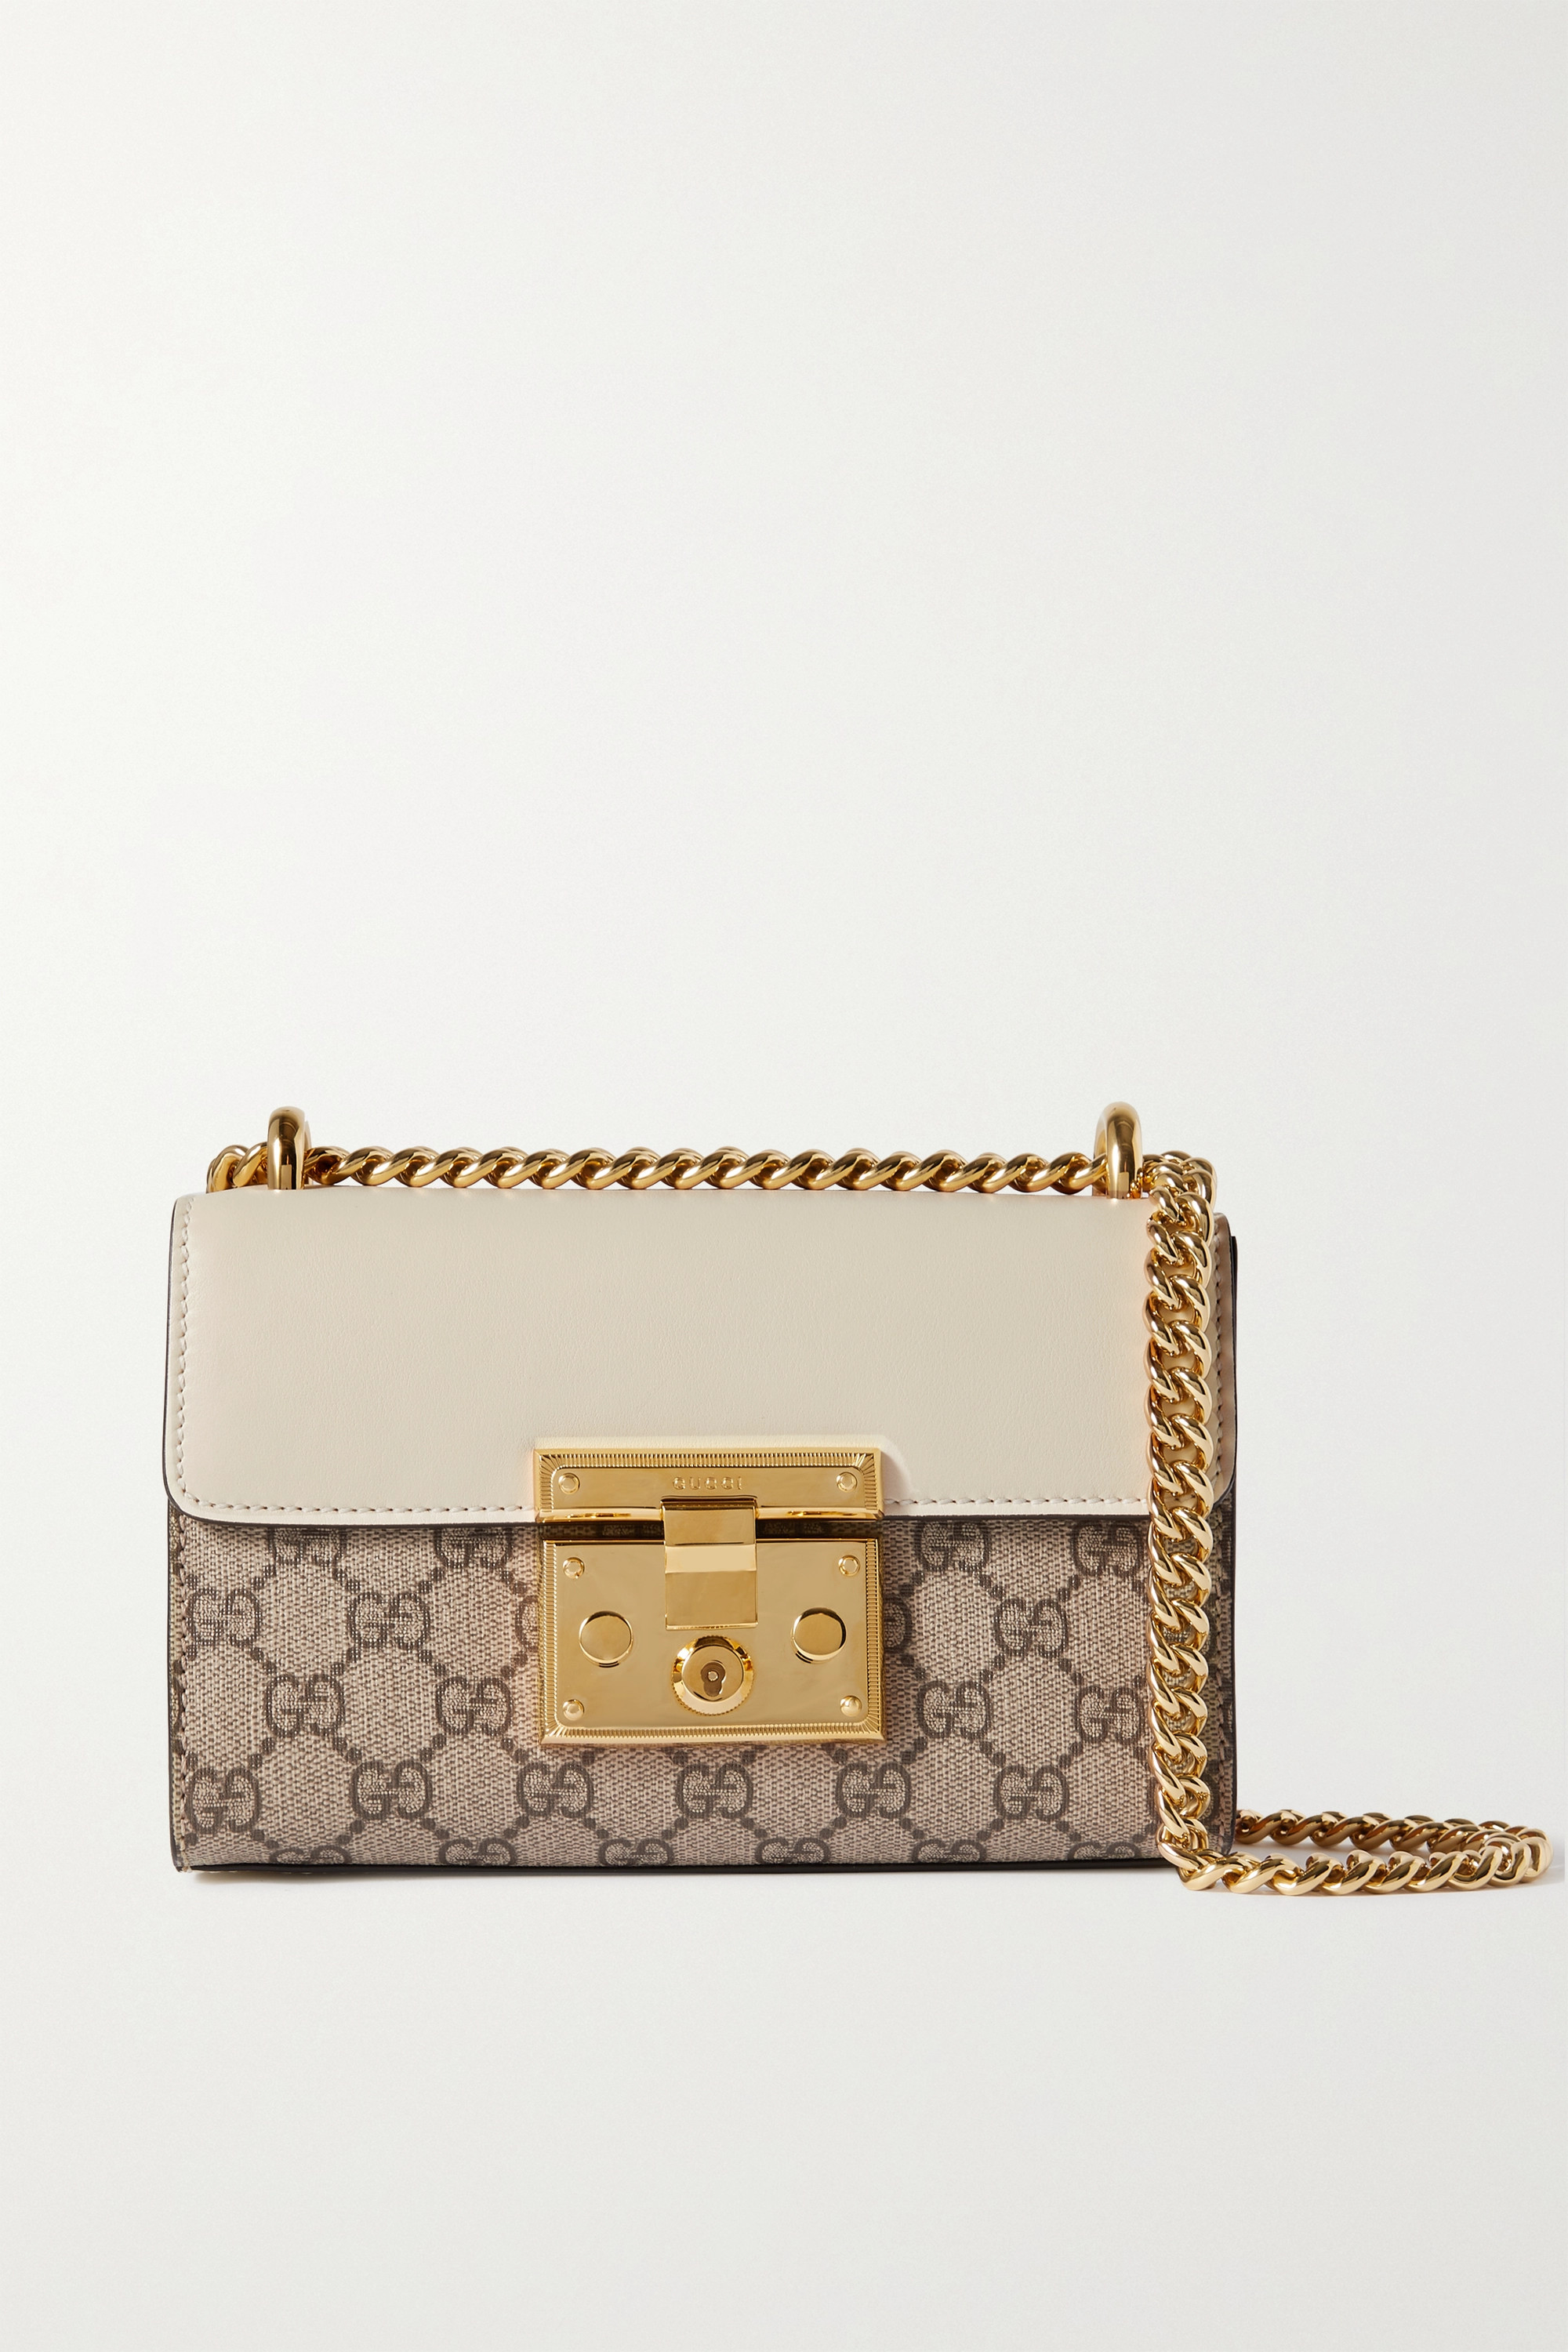 Gucci Padlock leather and printed coated-canvas shoulder bag